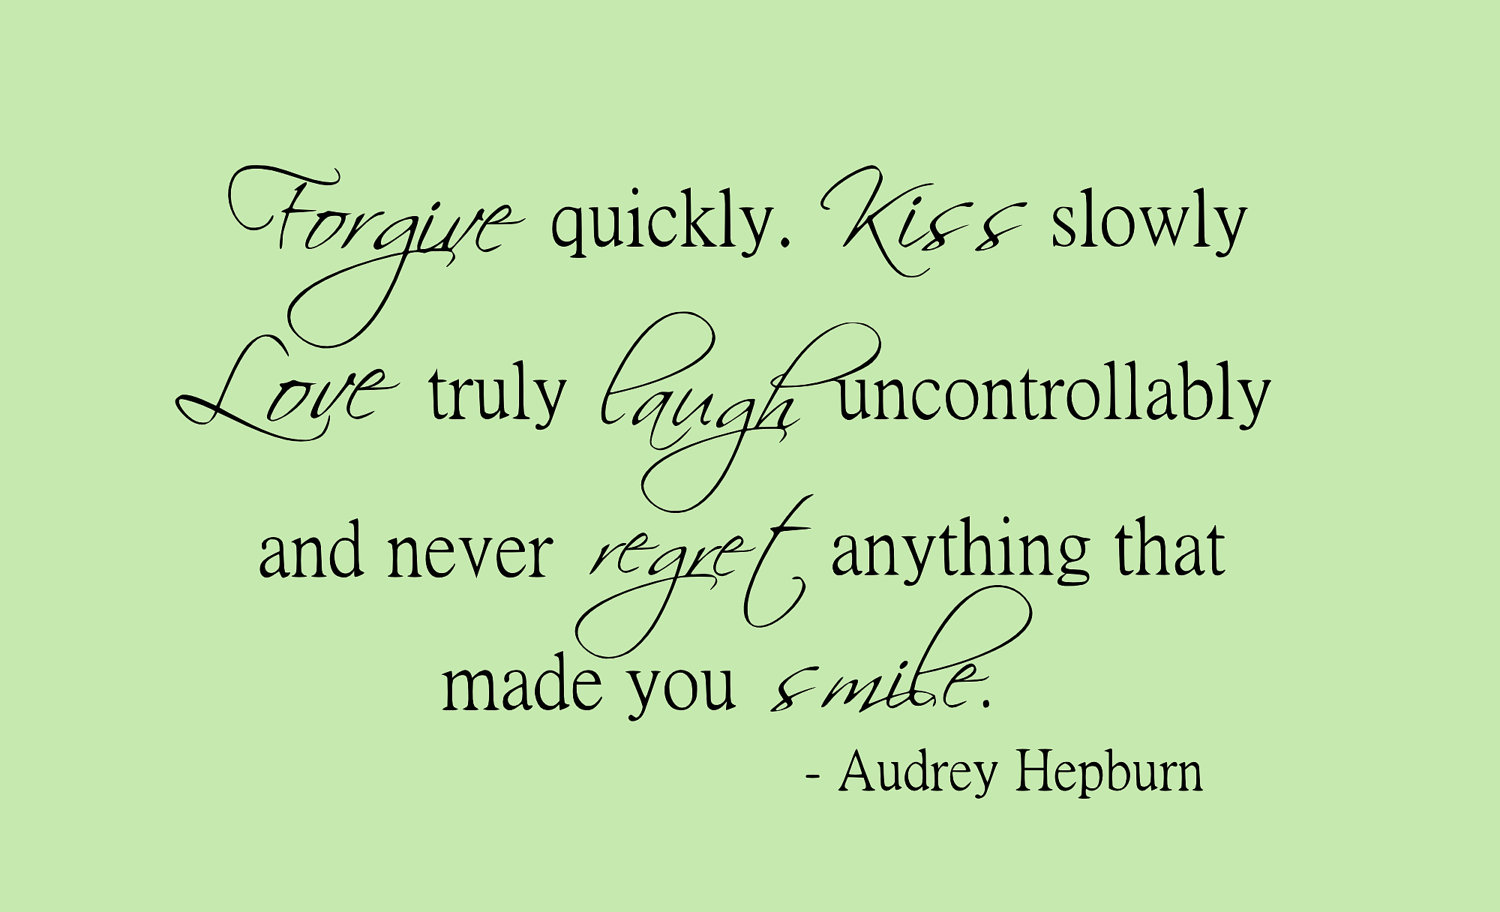 audrey hepburn quotes 14